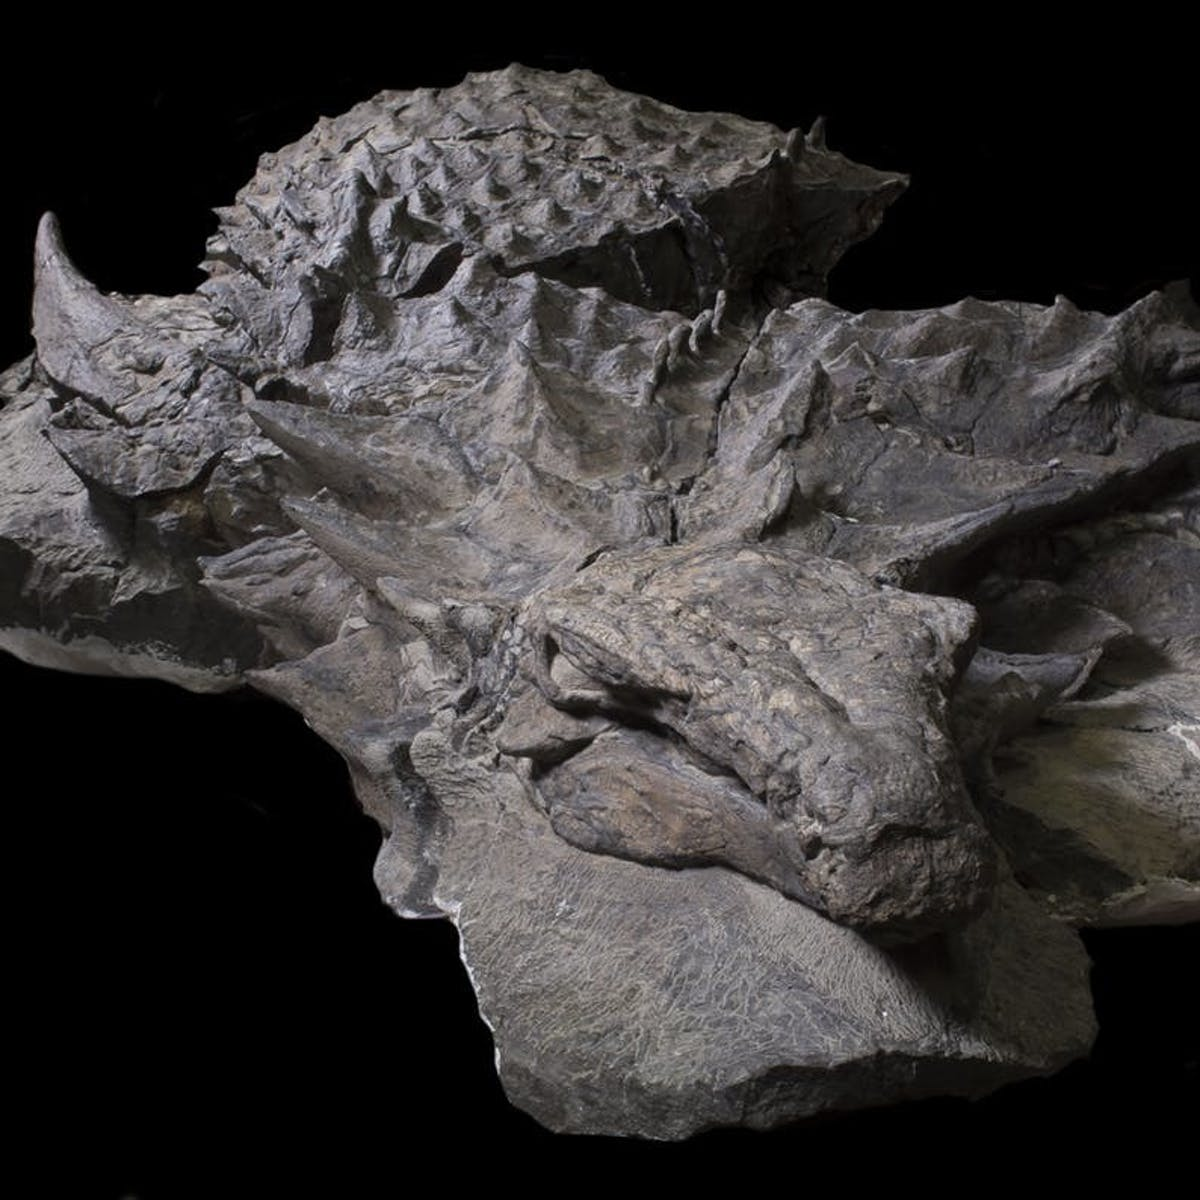 How Alberta's Famous Nodosaur Became So Exquisitely Preserved | Inverse